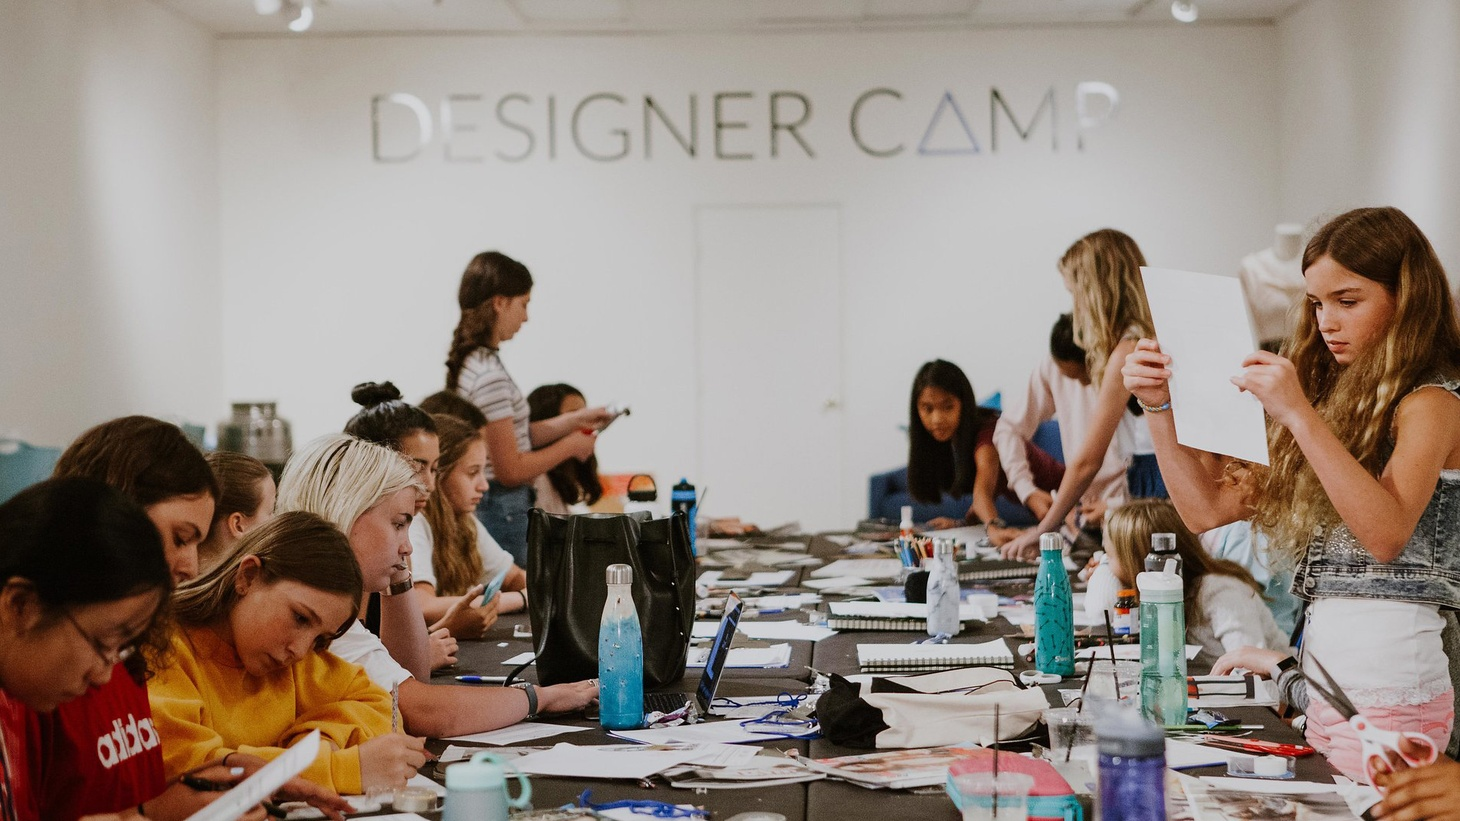 Girls work on their group projects at Designer Camp Photo by Sarah Shreves   Thousands of kids are at camp for the summer. And many will be horseback riding, making crafts and singing around the campfire. But what about a camp for kids who dream of having their own fashion or interior design empire? DnA producer Avishay Artsy went to the Big…